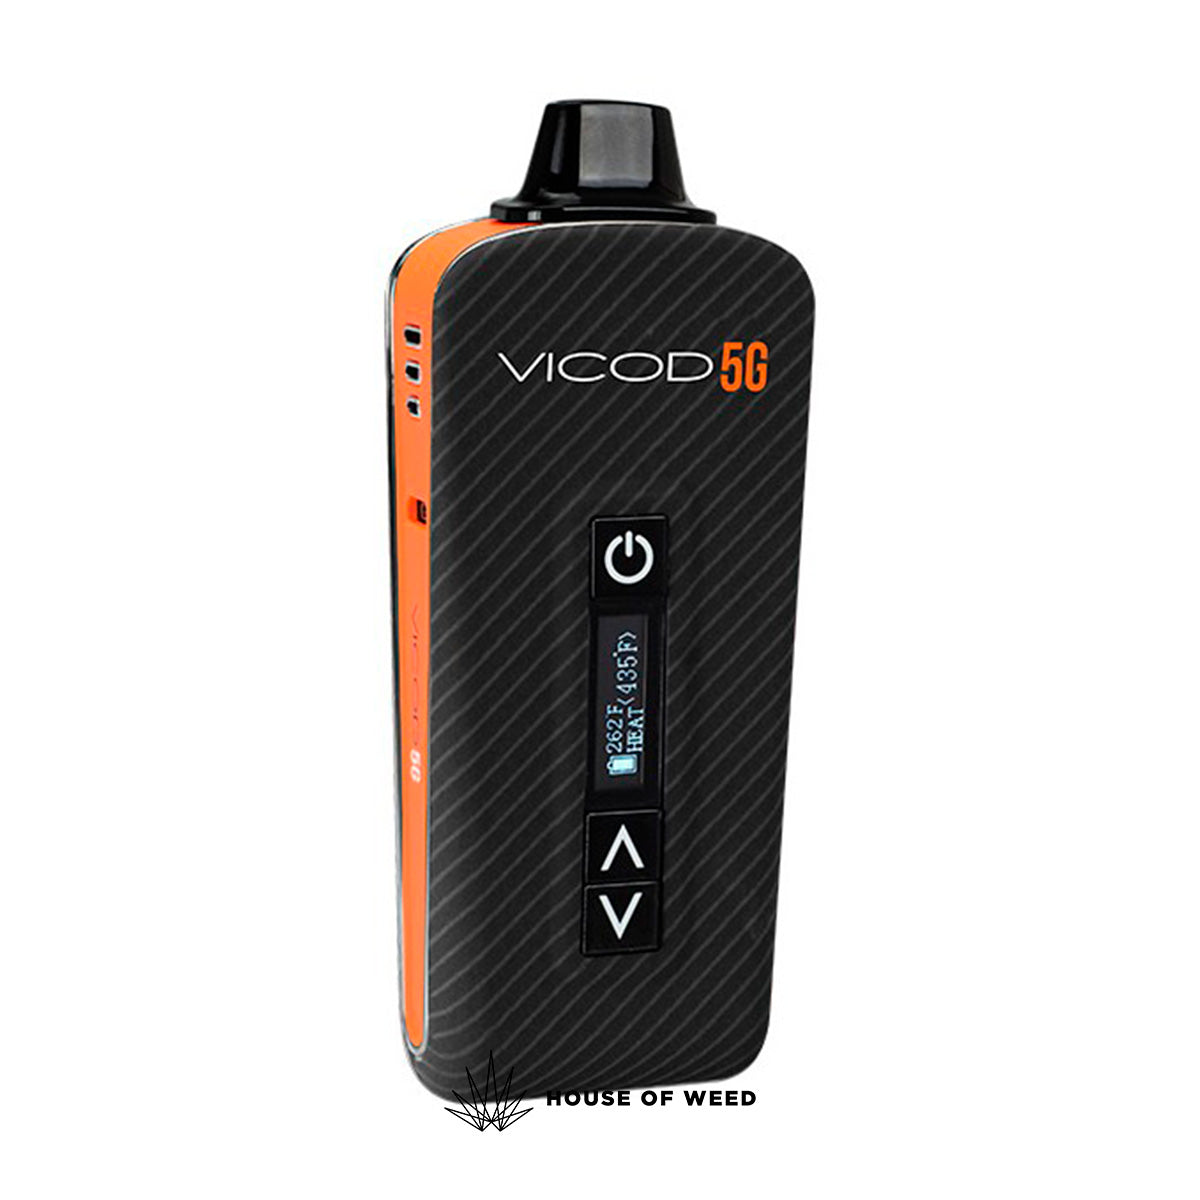 Vaporizador Atmos VICOD 5G chile color negro I Tienda online House of Weed